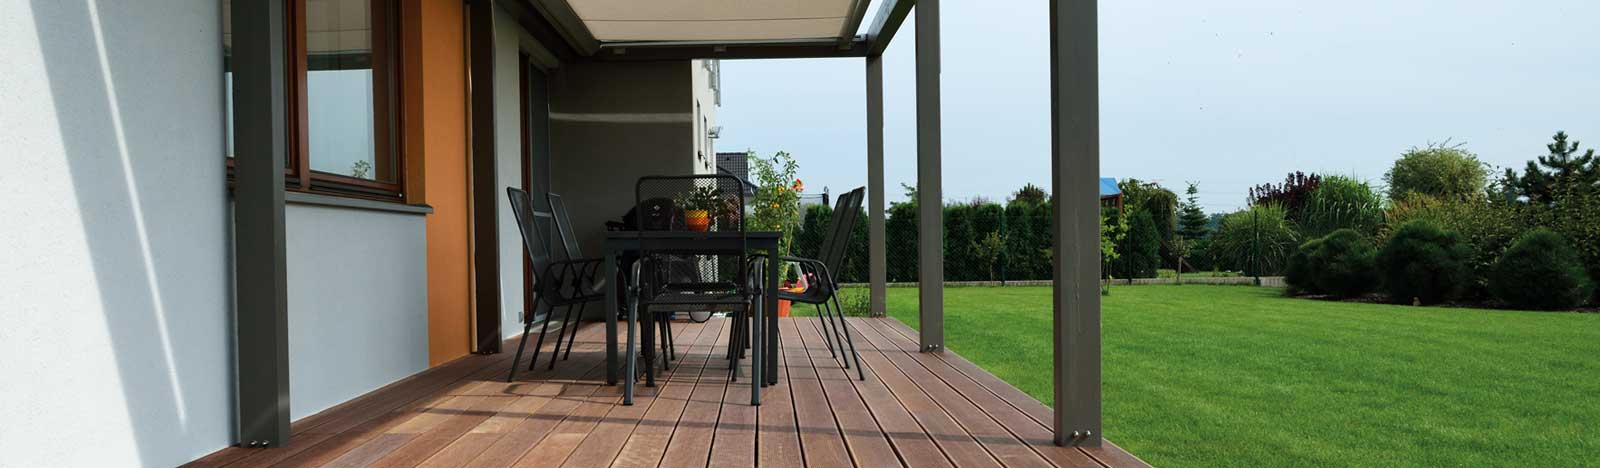 Wooden Decking, Wooden Terraces - Real Deck Manufacturers